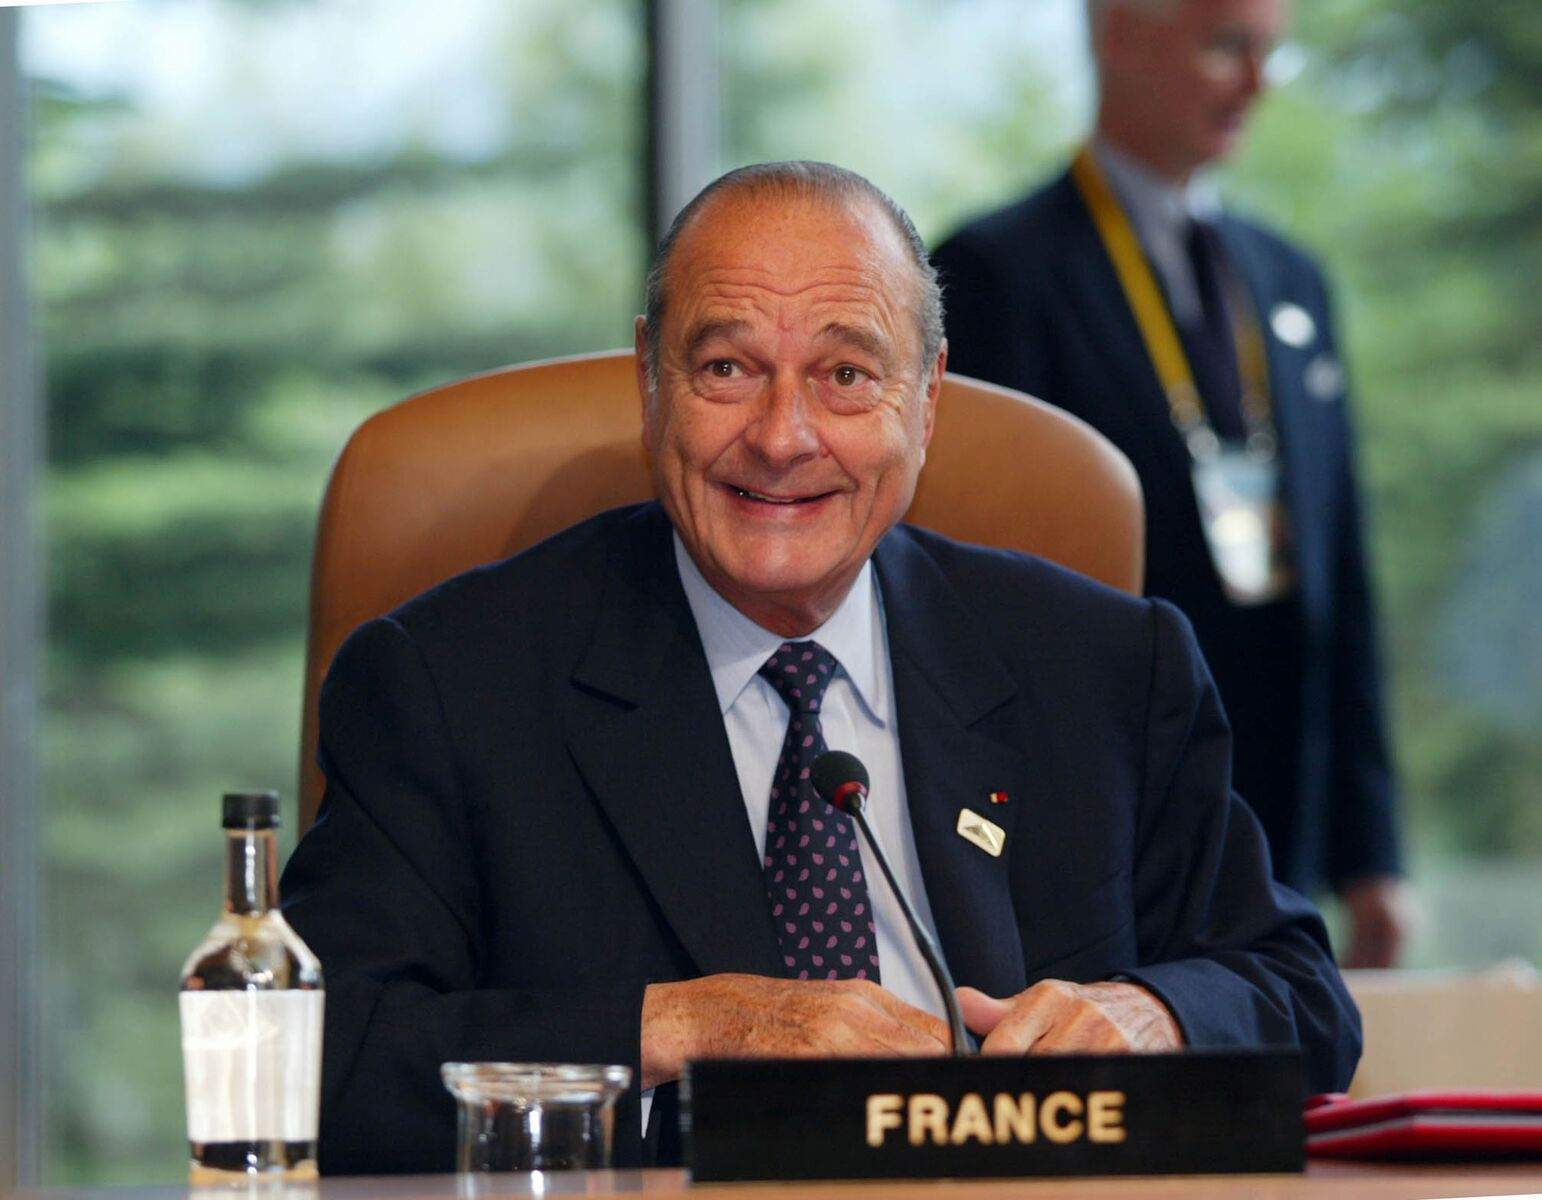 L'ancien président Jacques Chirac. | Photo : Getty Images